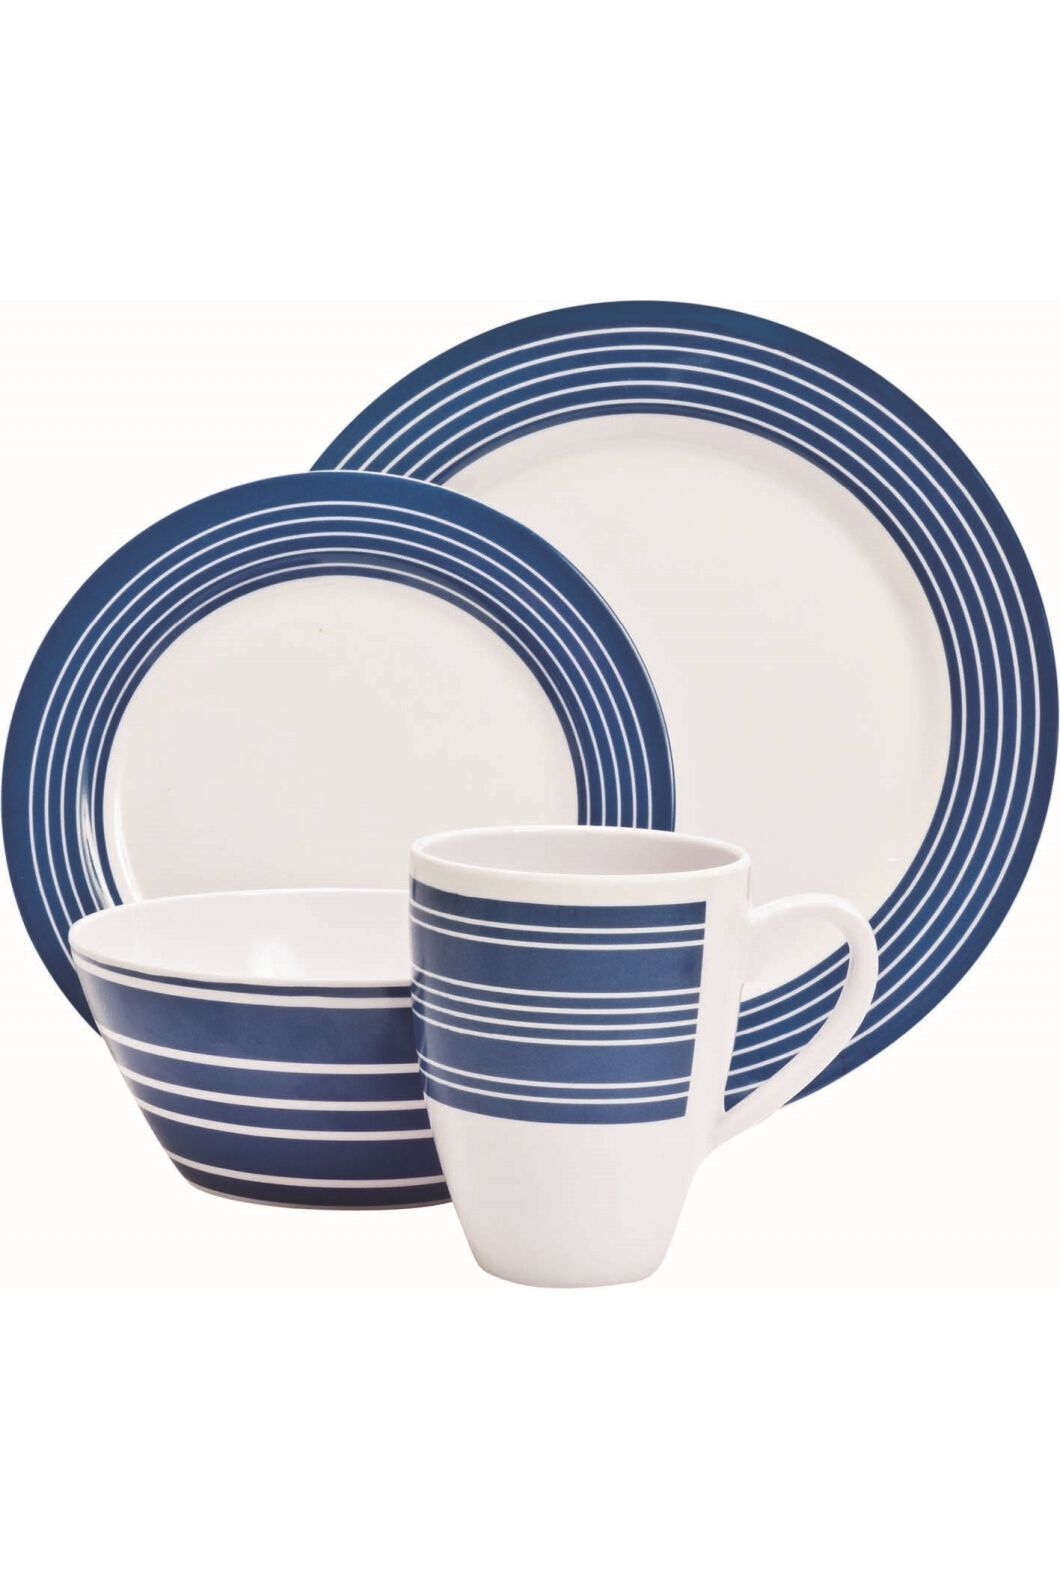 Prim6 Piece Melamine Nautical Set, None, hi-res